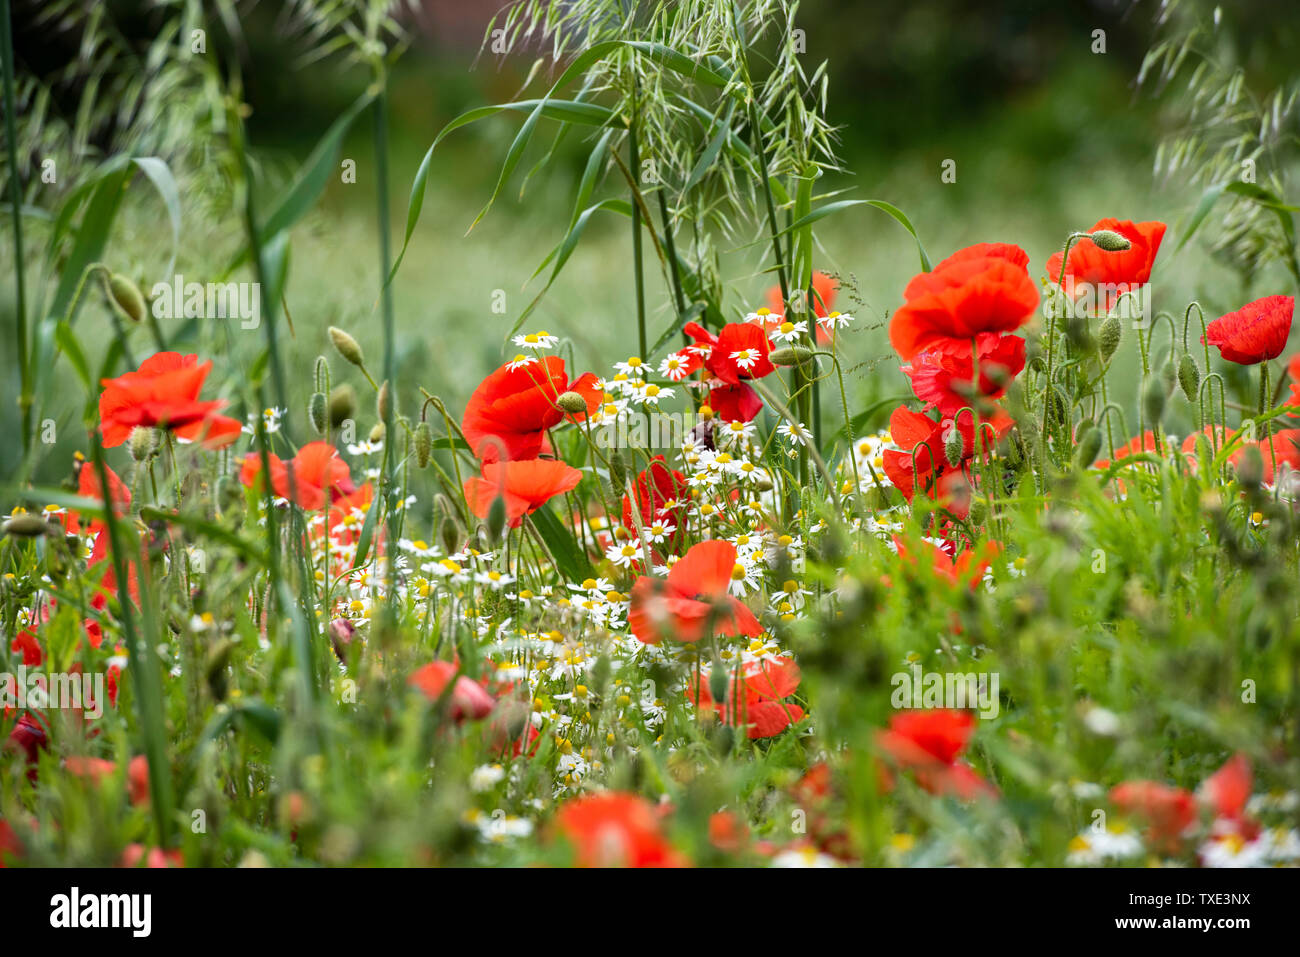 A field of Poppies and Daisies in Bingham, Nottinghamshire England UK Stock Photo